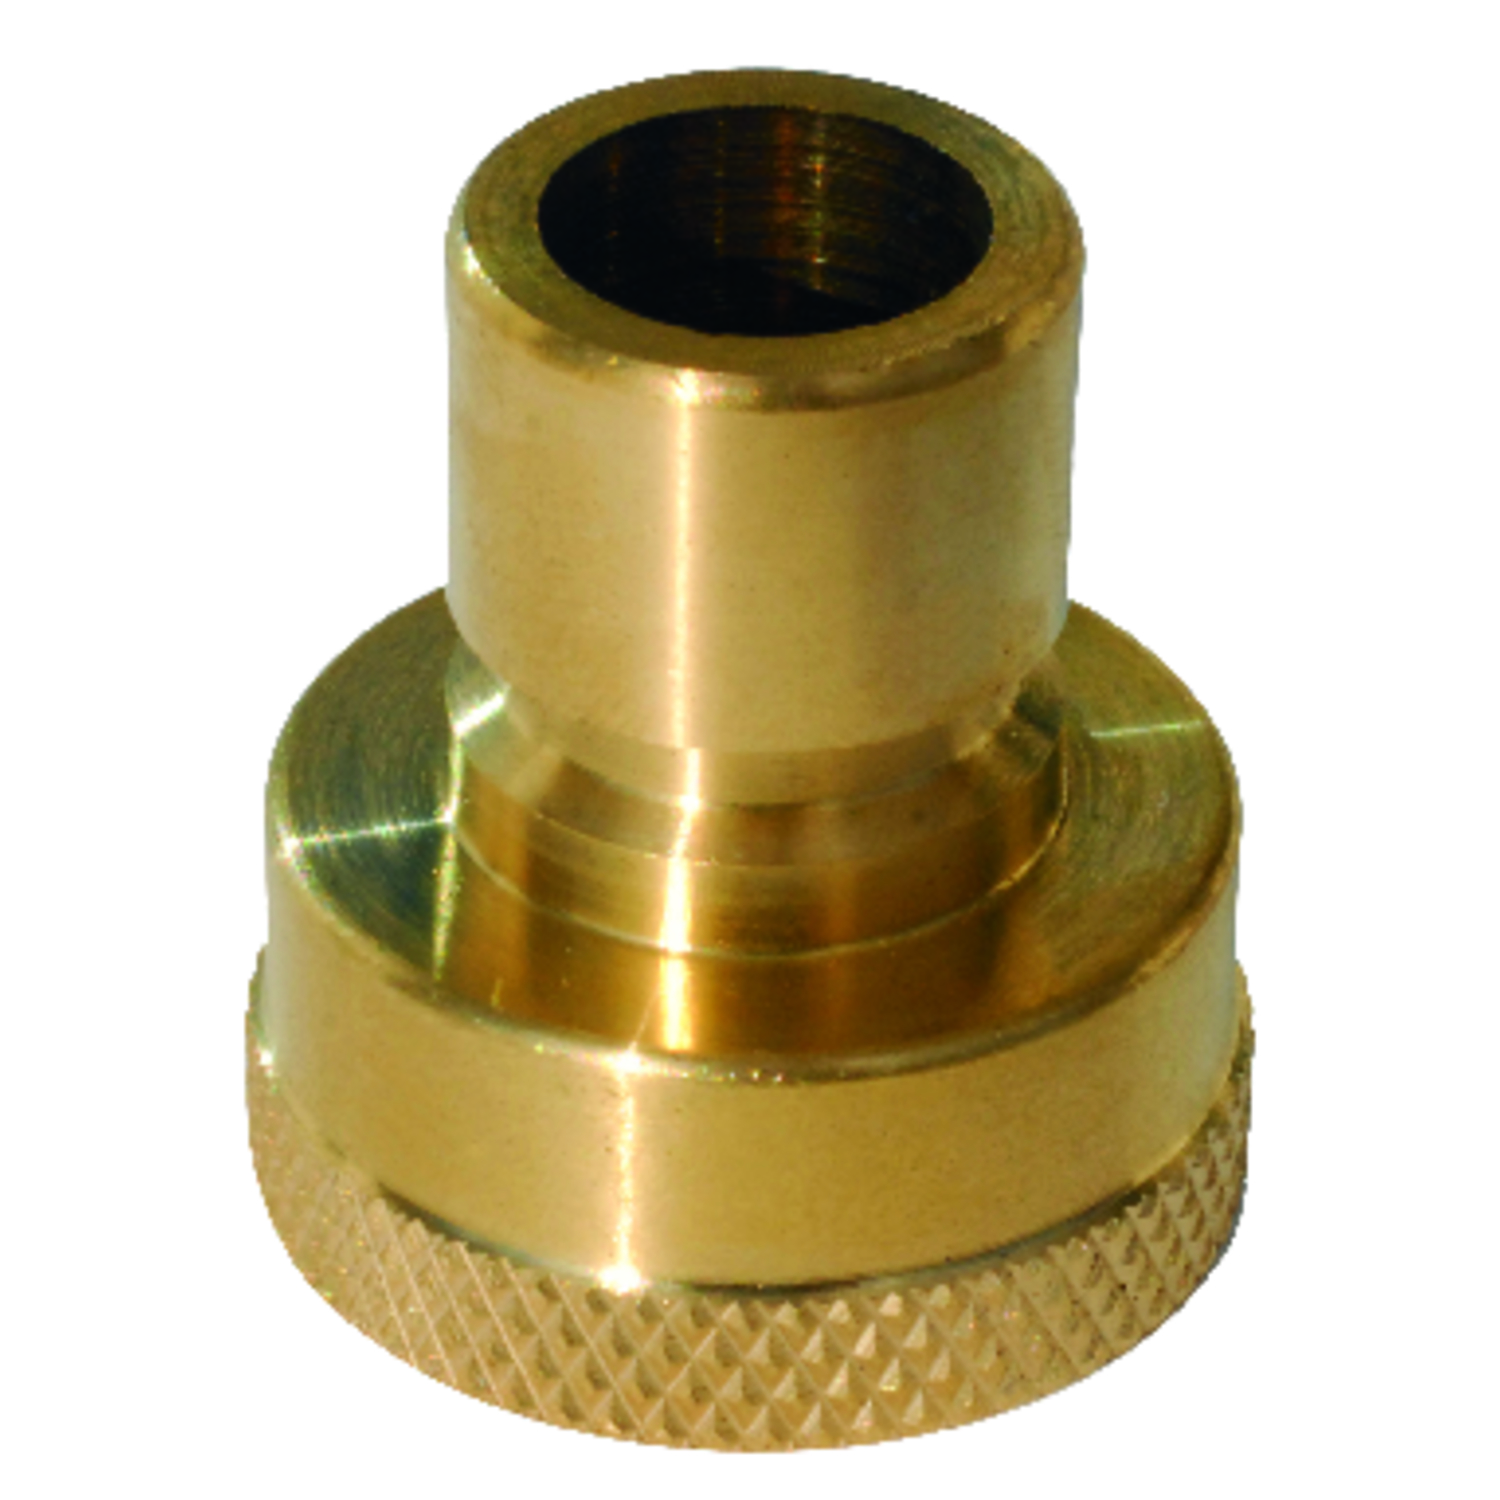 Ace Brass Threaded Female Quick Connector Coupling  sc 1 st  Ace Hardware & Garden Hose Connectors - Hose Fittings u0026 Coupling at Ace Hardware